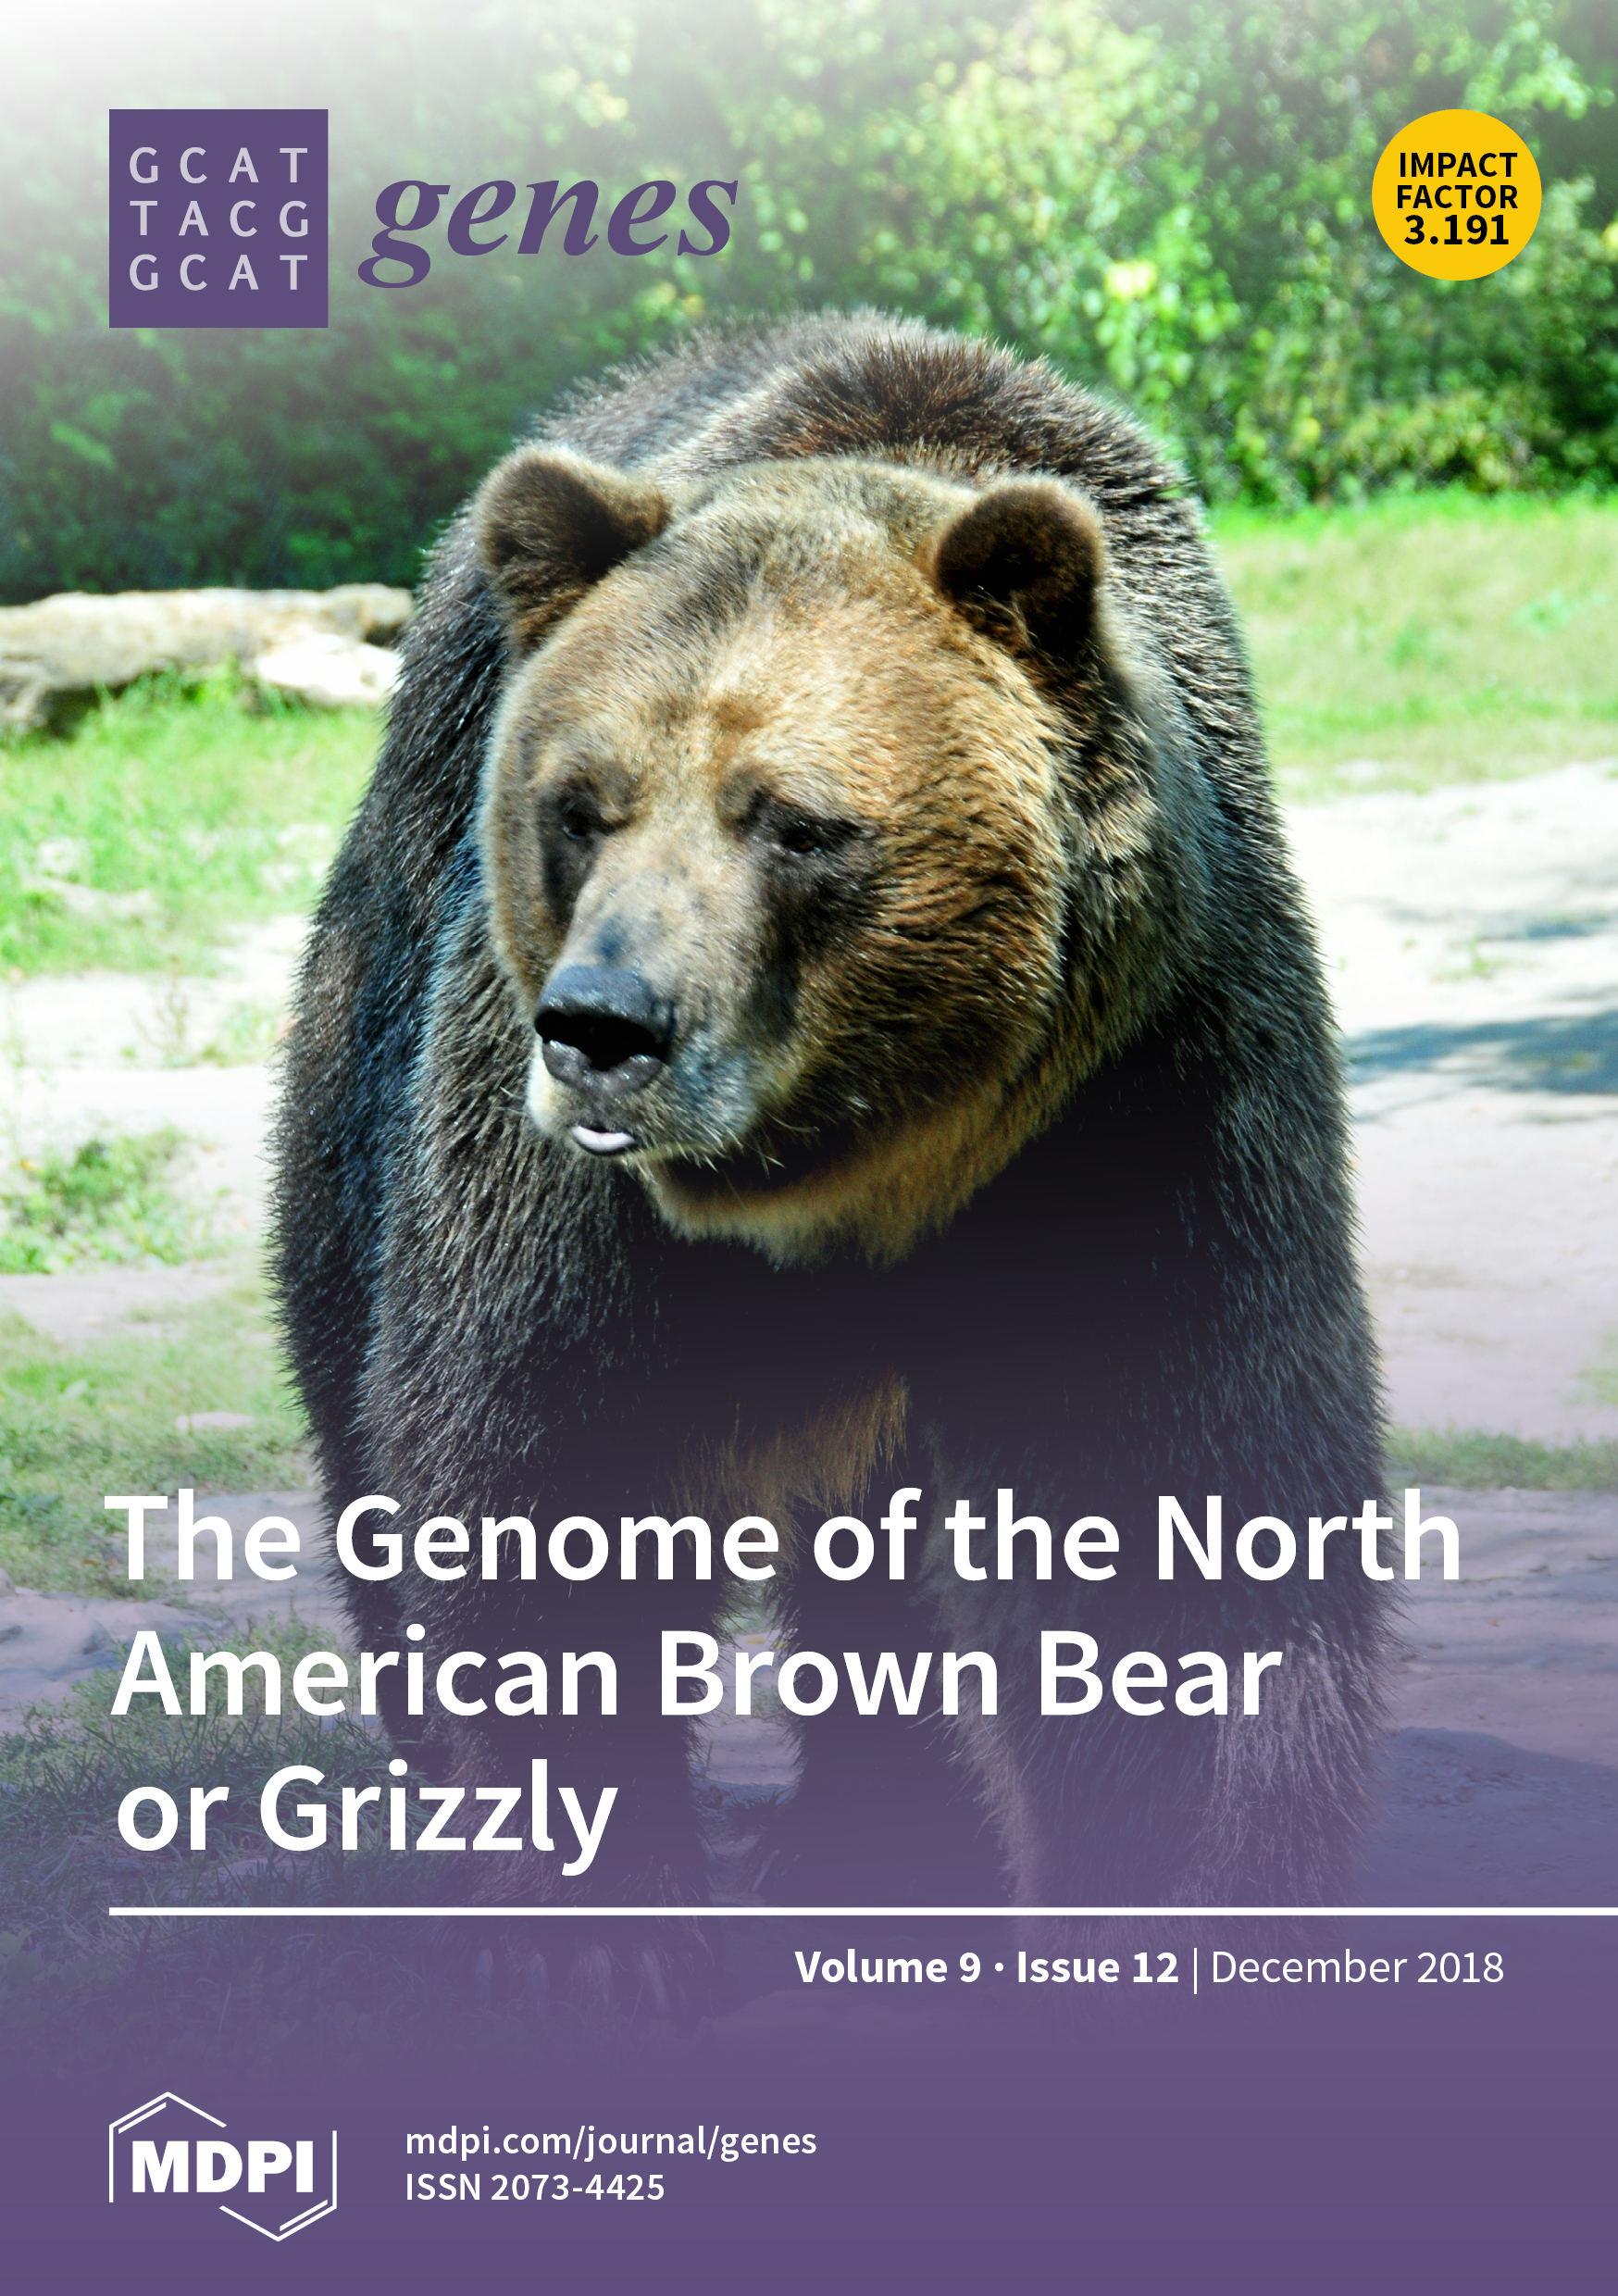 ea8d4a2f8b7 The genome of the grizzly bear Samson was sequenced at BC Cancer's Michael  Smith ...